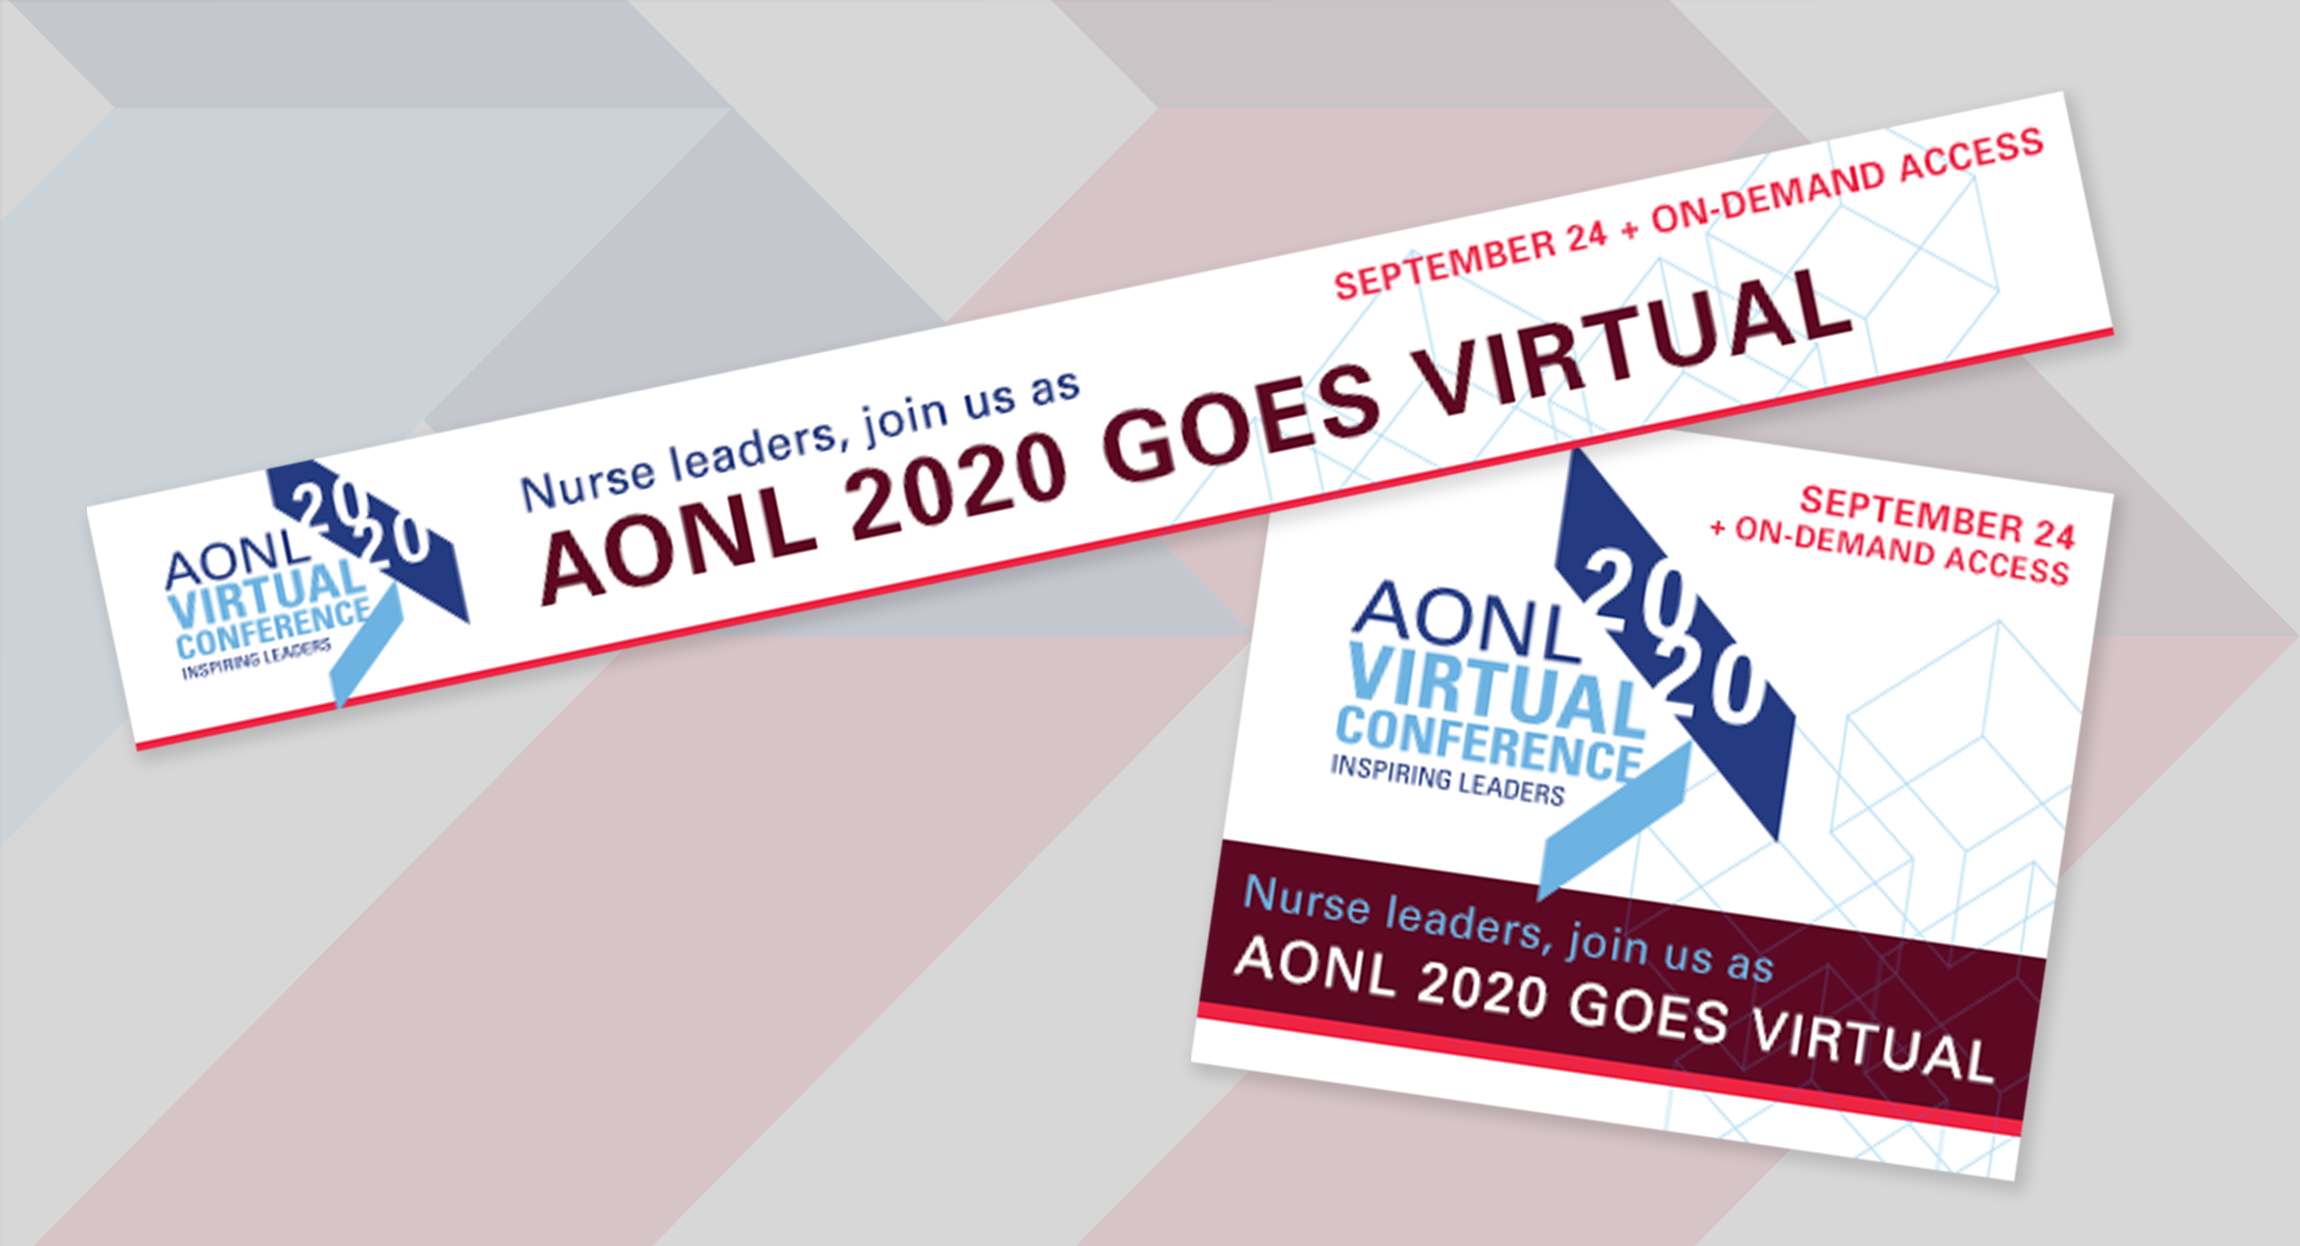 AONL2020 Virtual Conference Banner Ad Design